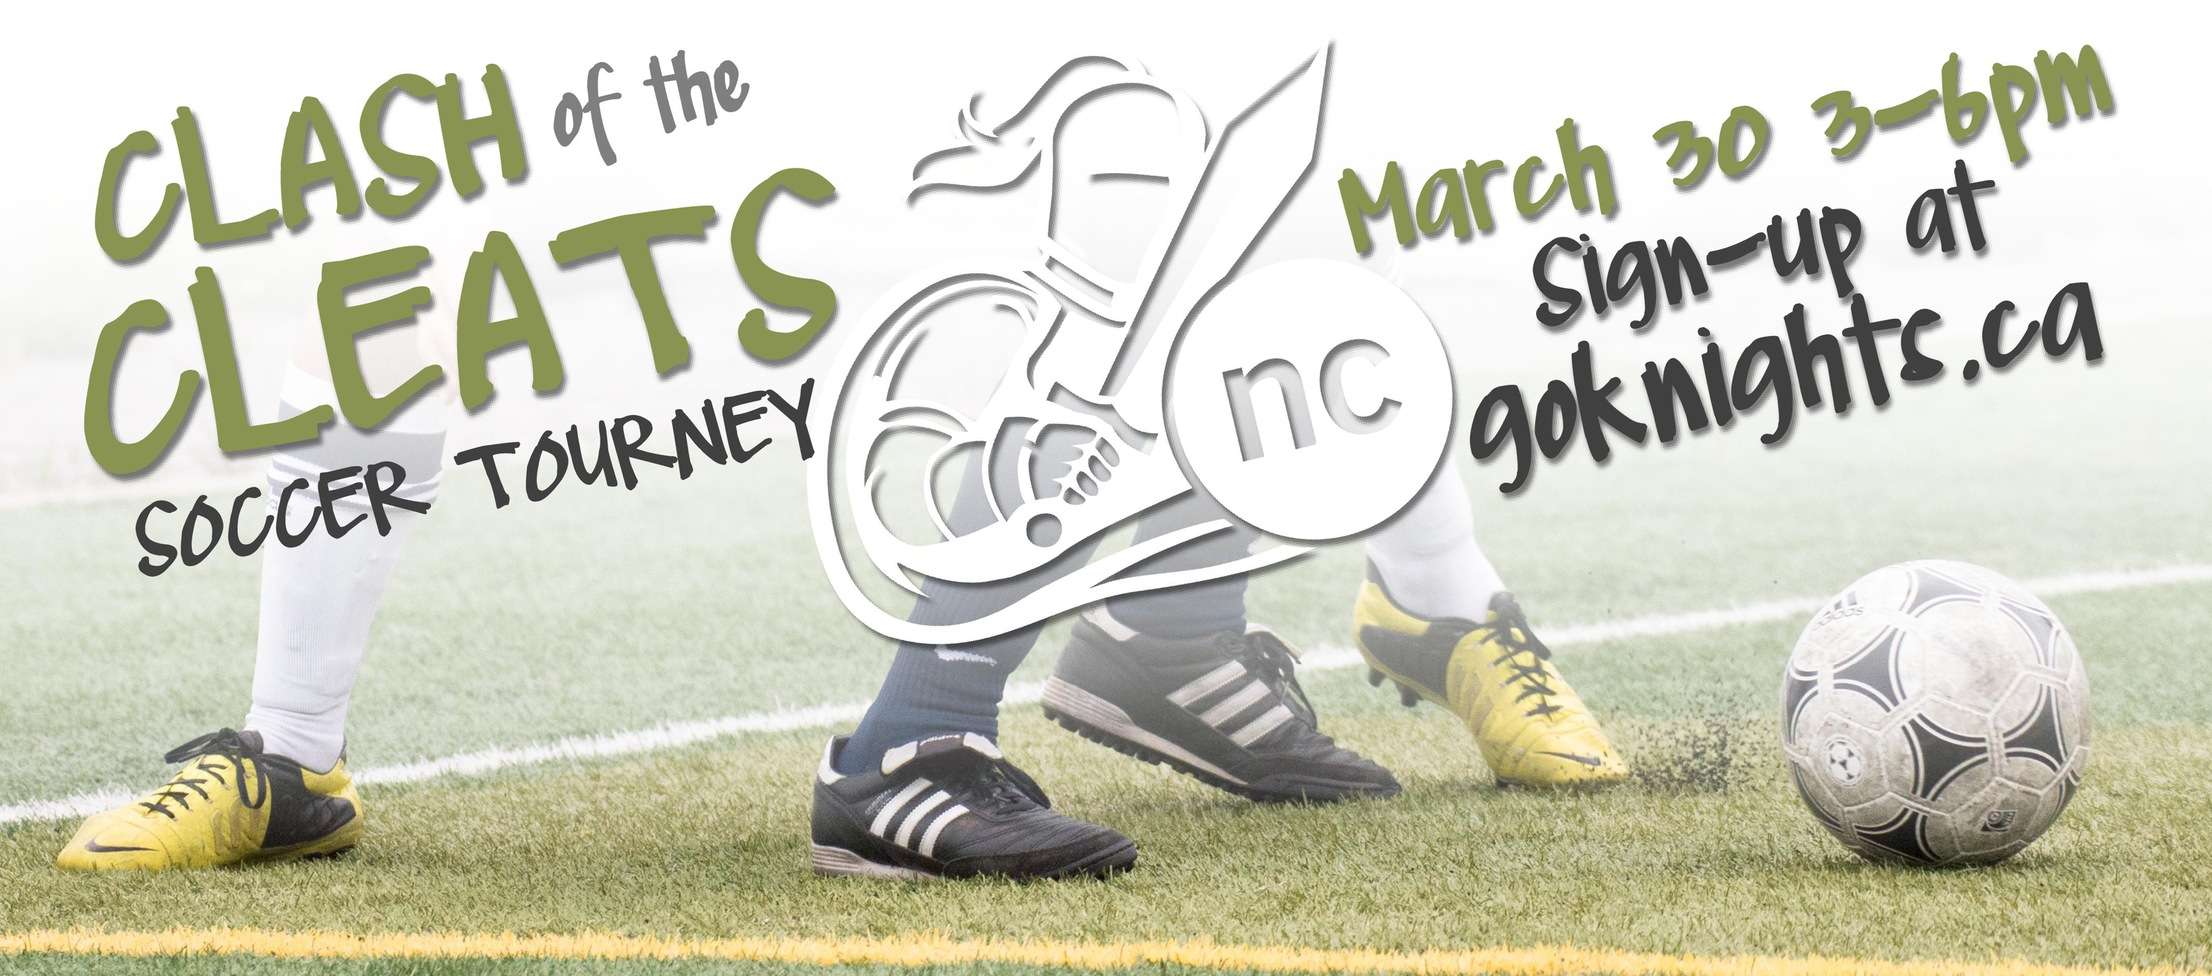 SIGN-UP for the Clash of the Cleats